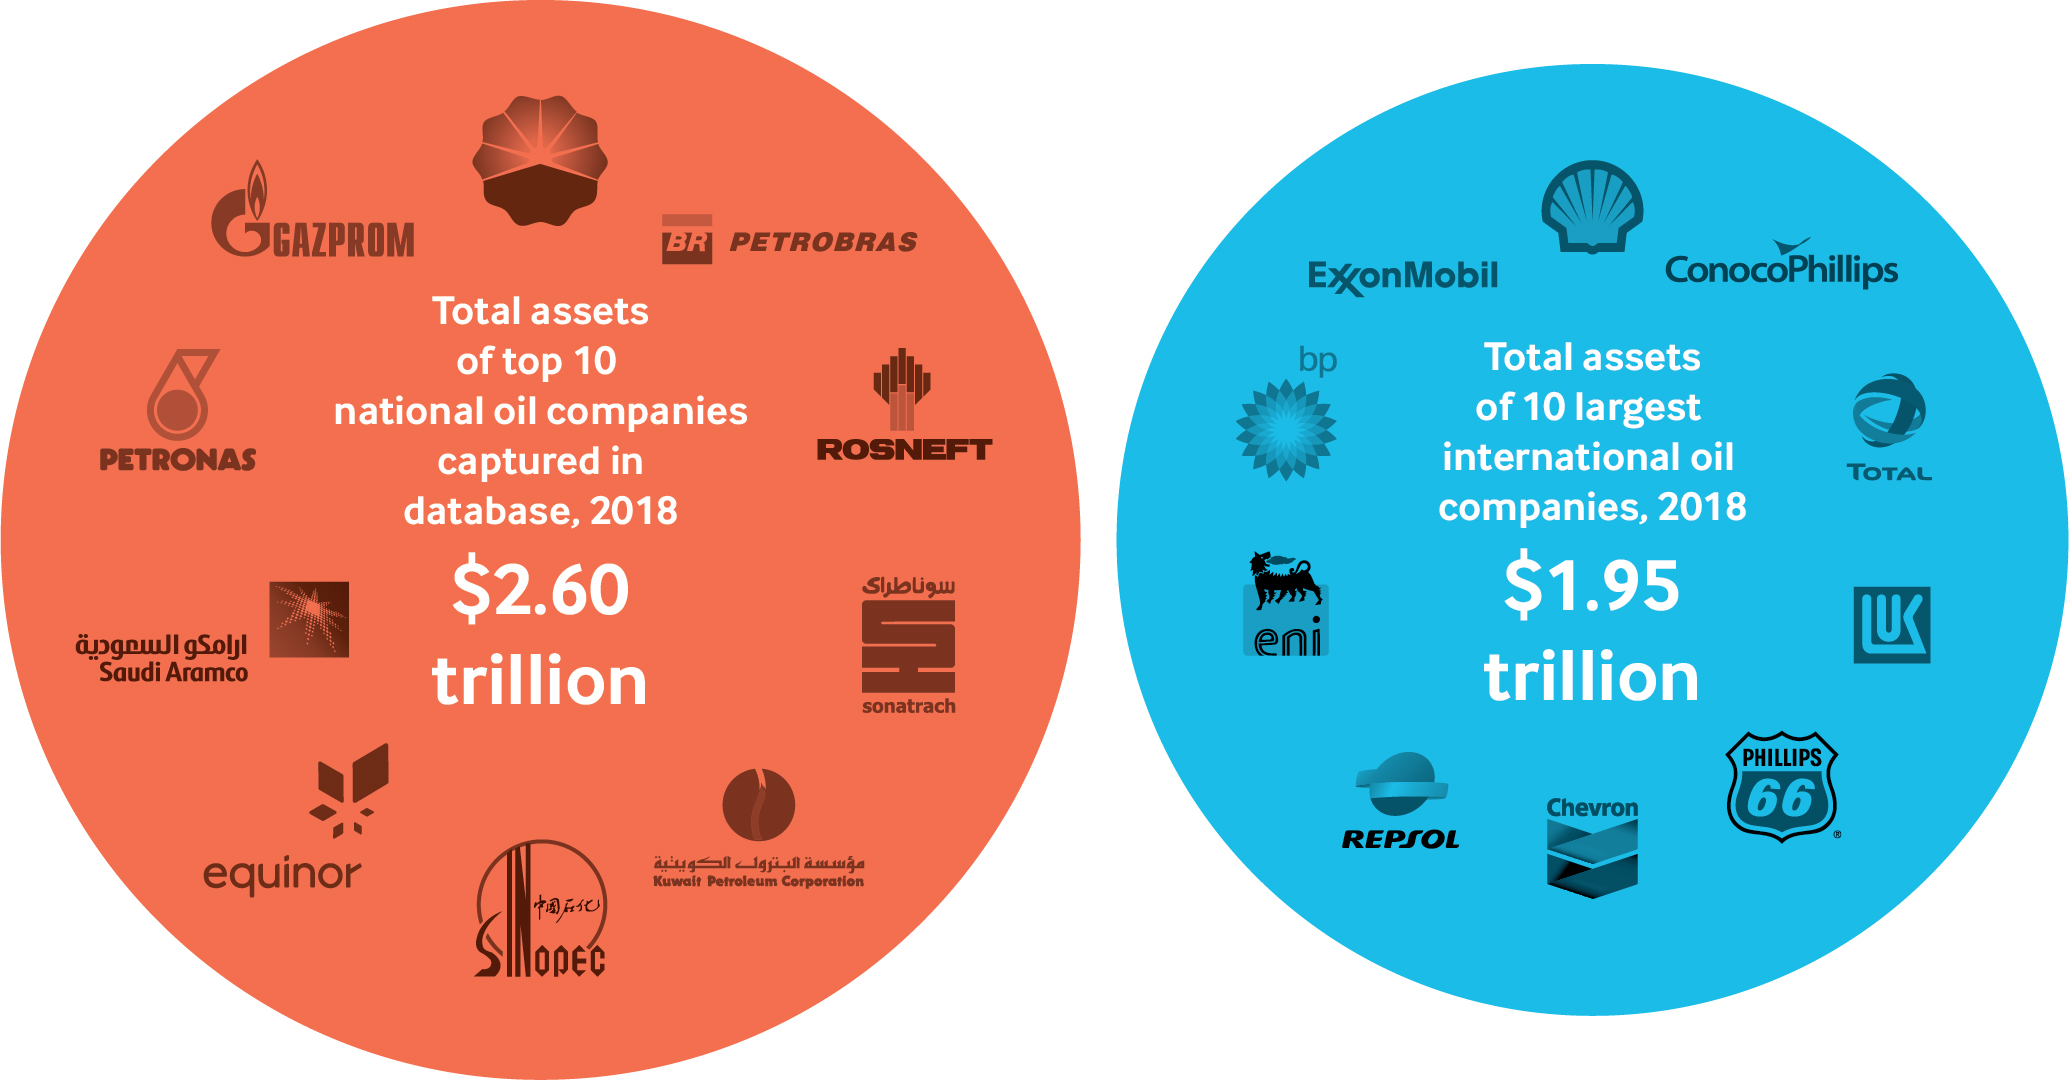 Top 10 national oil companies' assets VS largest international oil companies